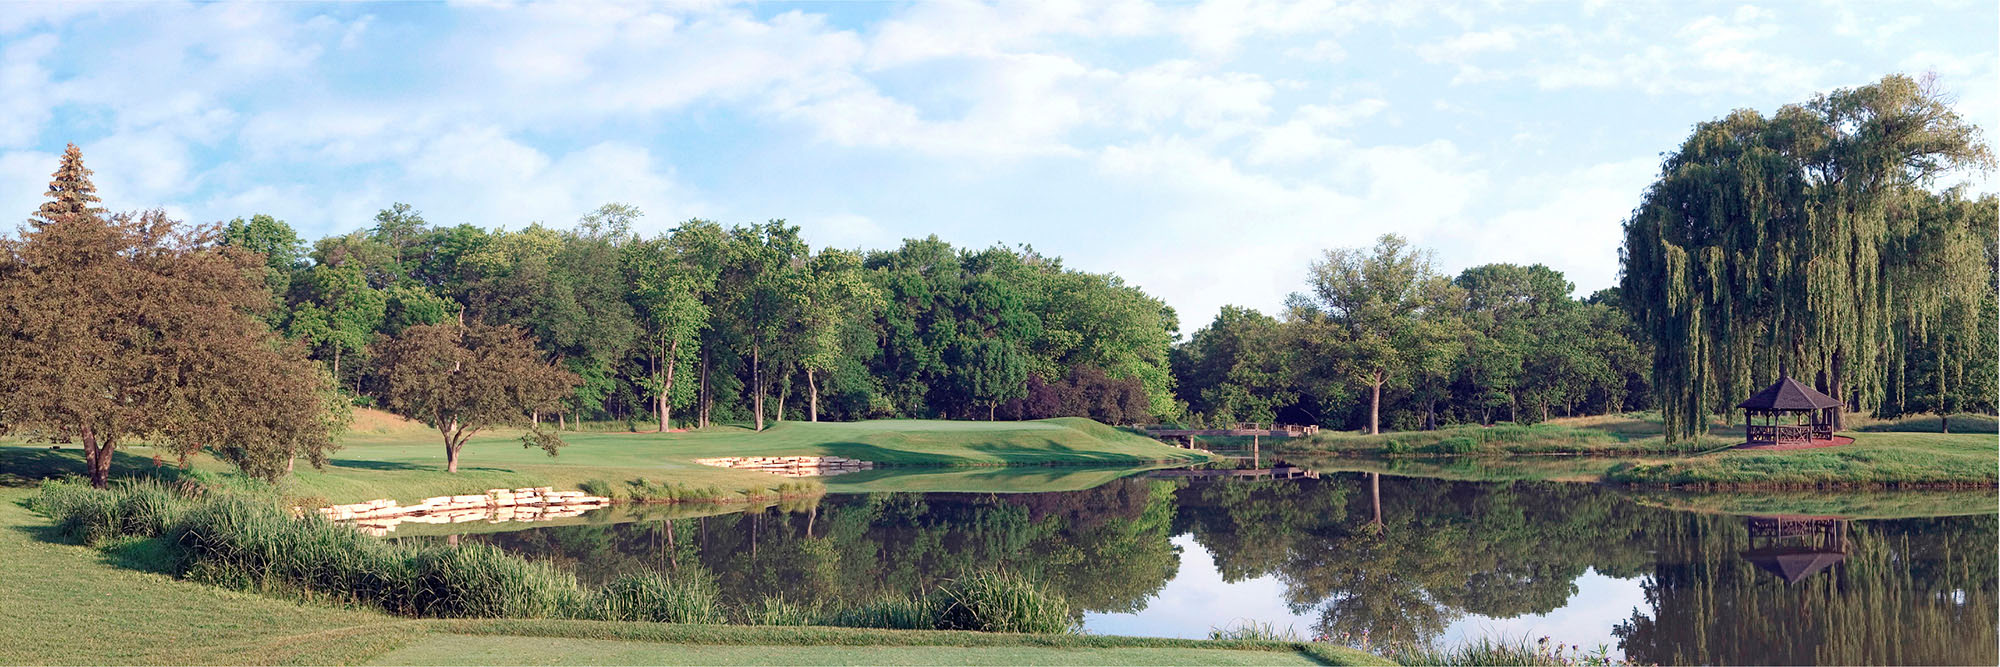 Golf Course Image - Skokie CC No. 12